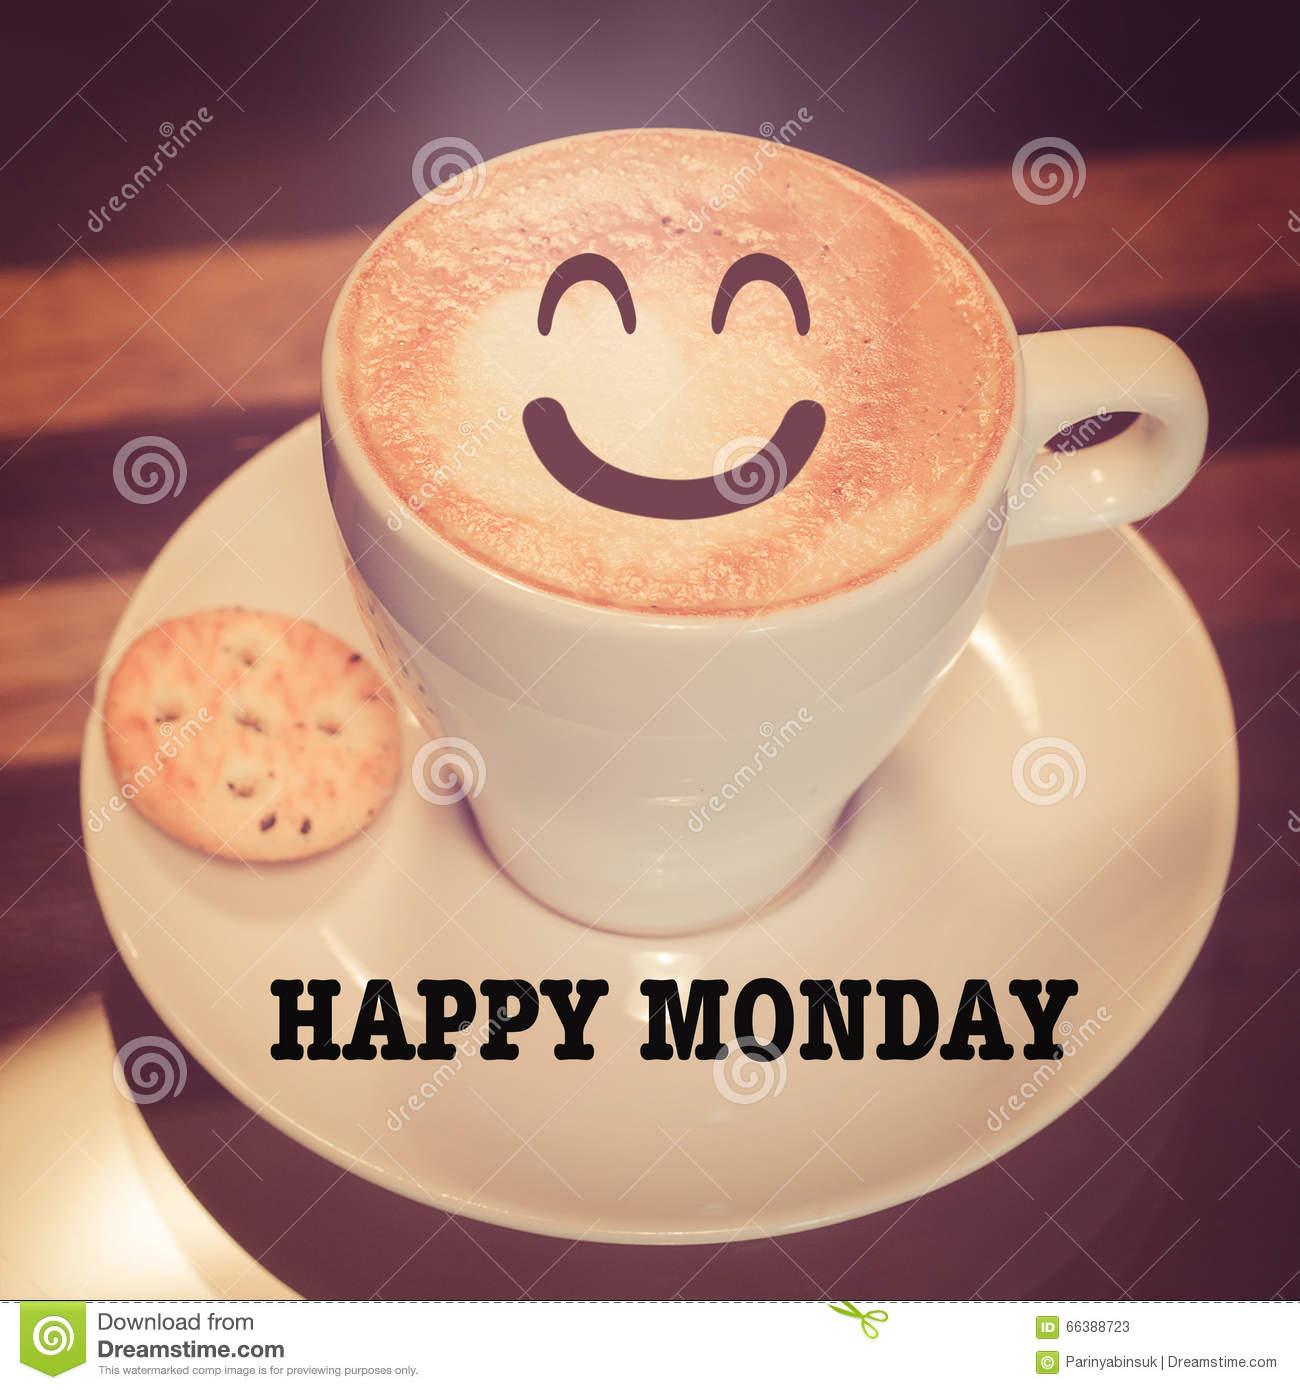 Happy Monday With Coffee Cup On Table Stock Image - Image of cafe ... #mondayCoffee